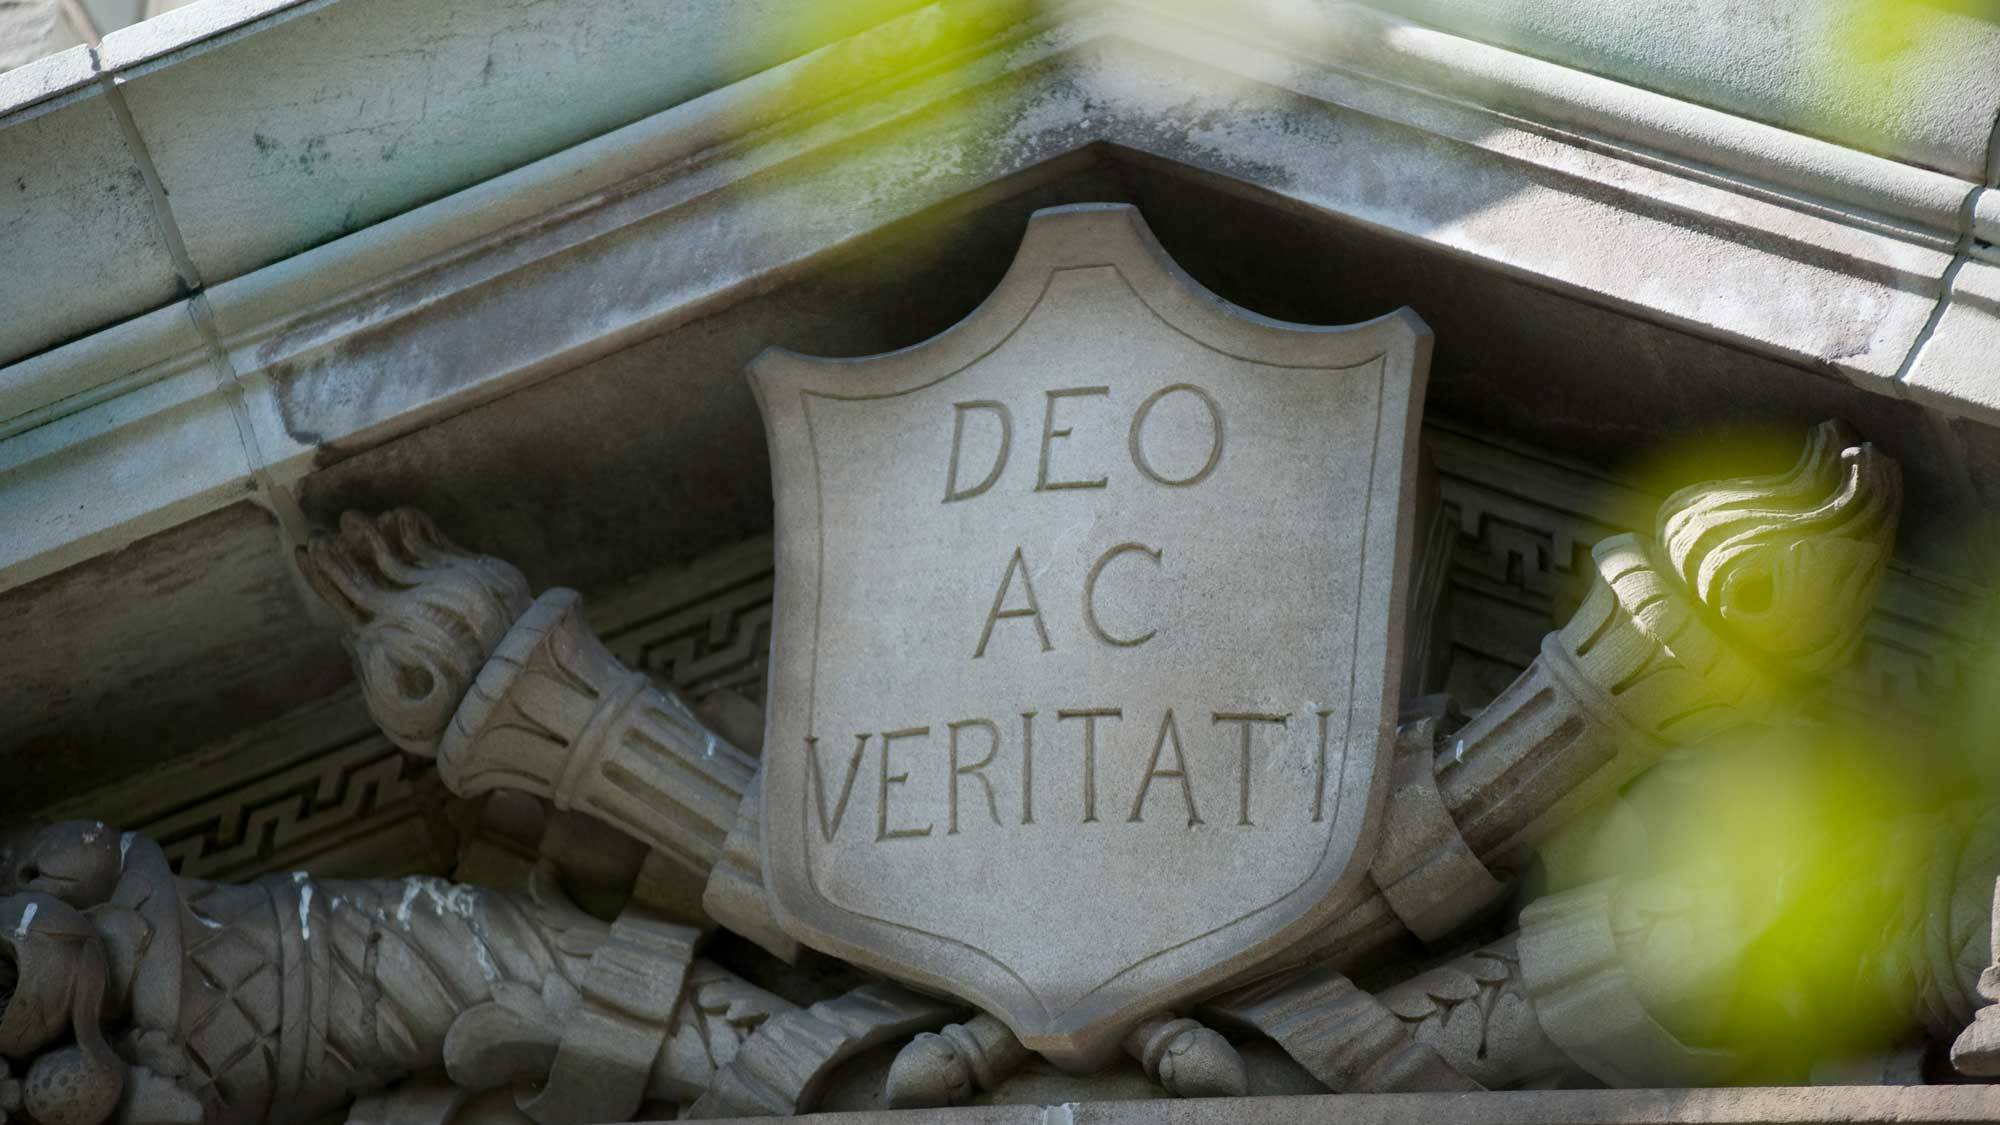 Deo Ac Veritati carved on shield